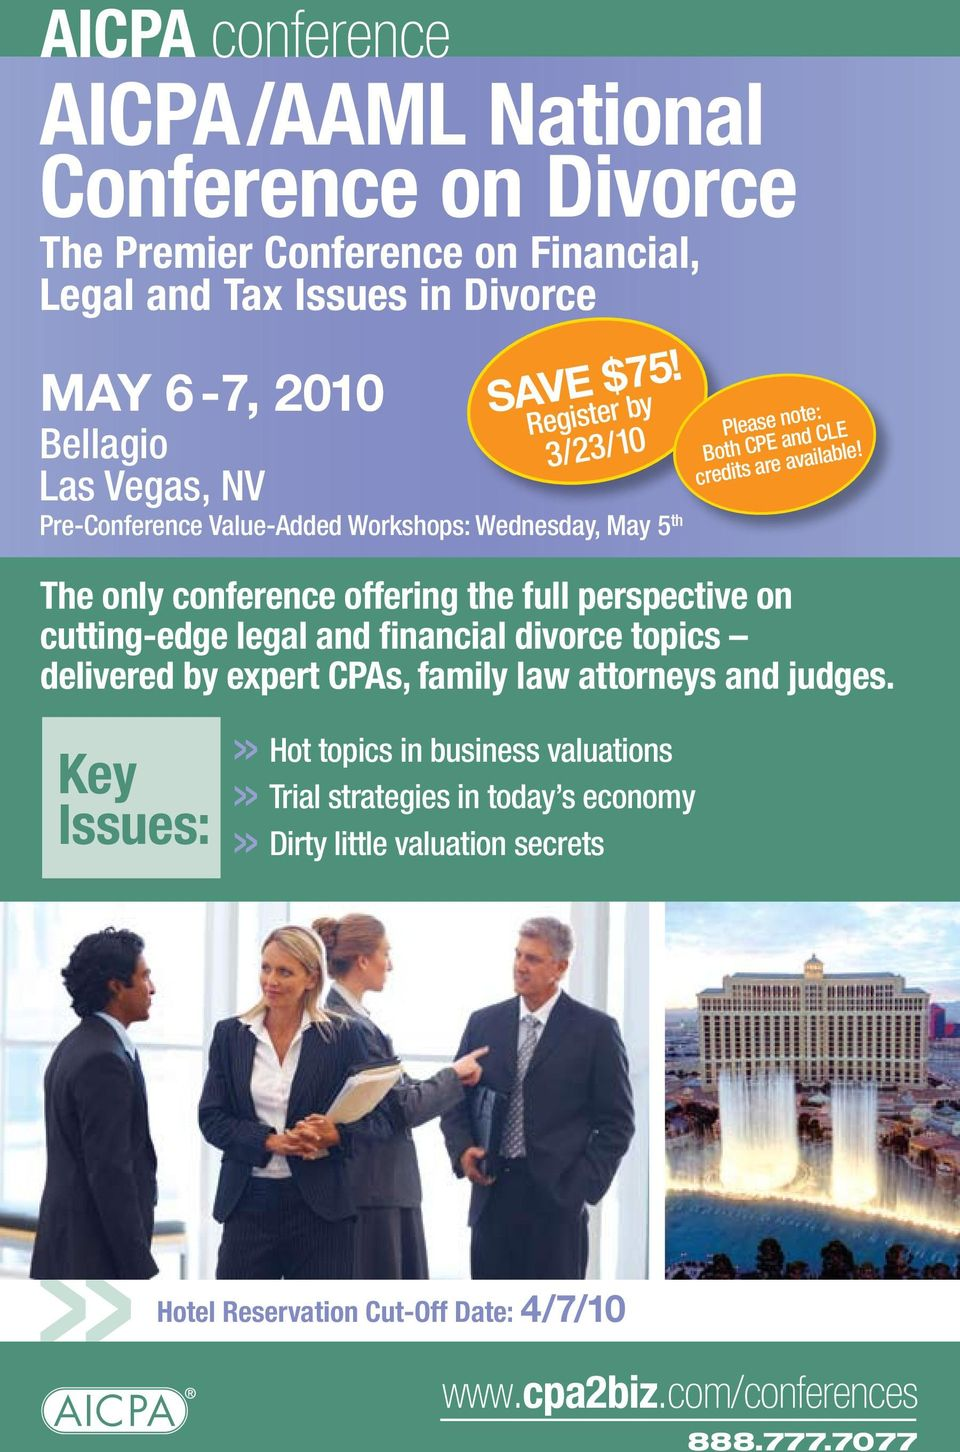 The only conference offering the full perspective on cutting-edge legal and financial divorce topics delivered by expert CPAs, family law attorneys and judges.